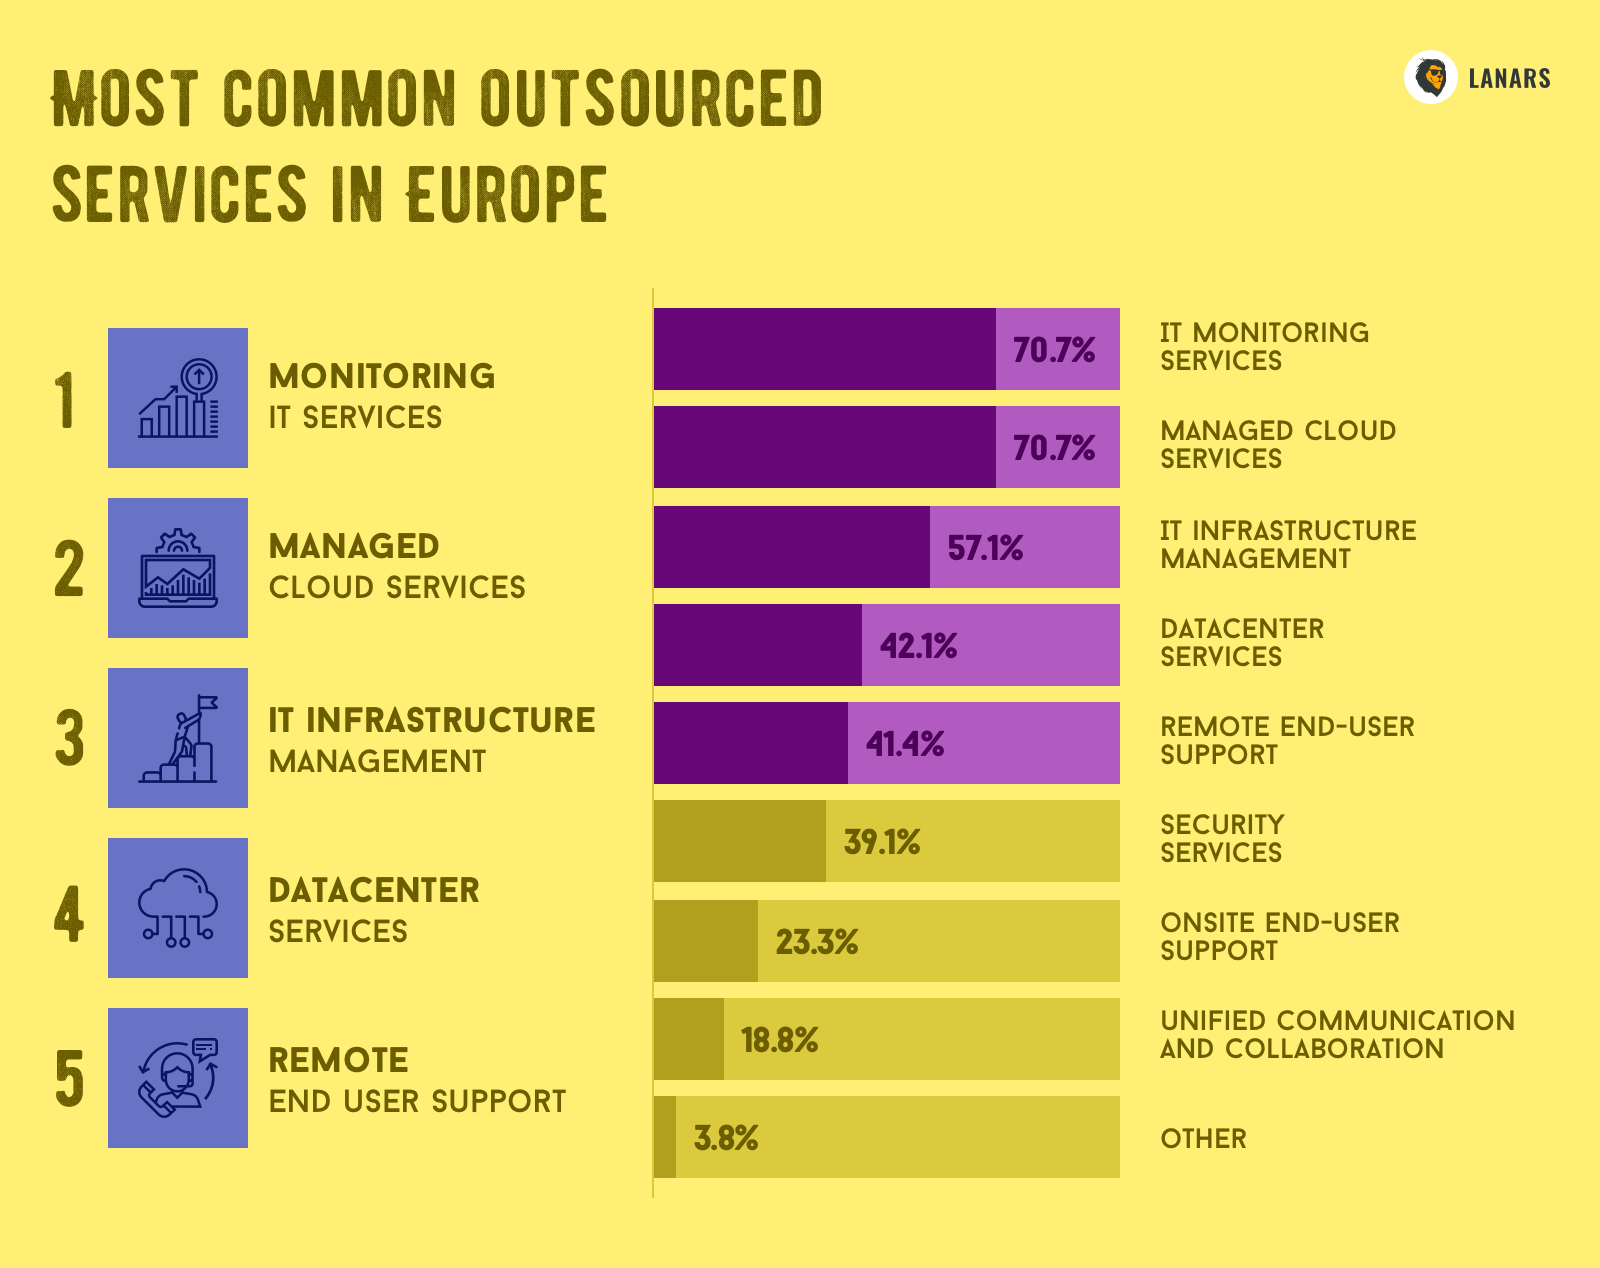 Most common outsourced services in Europe